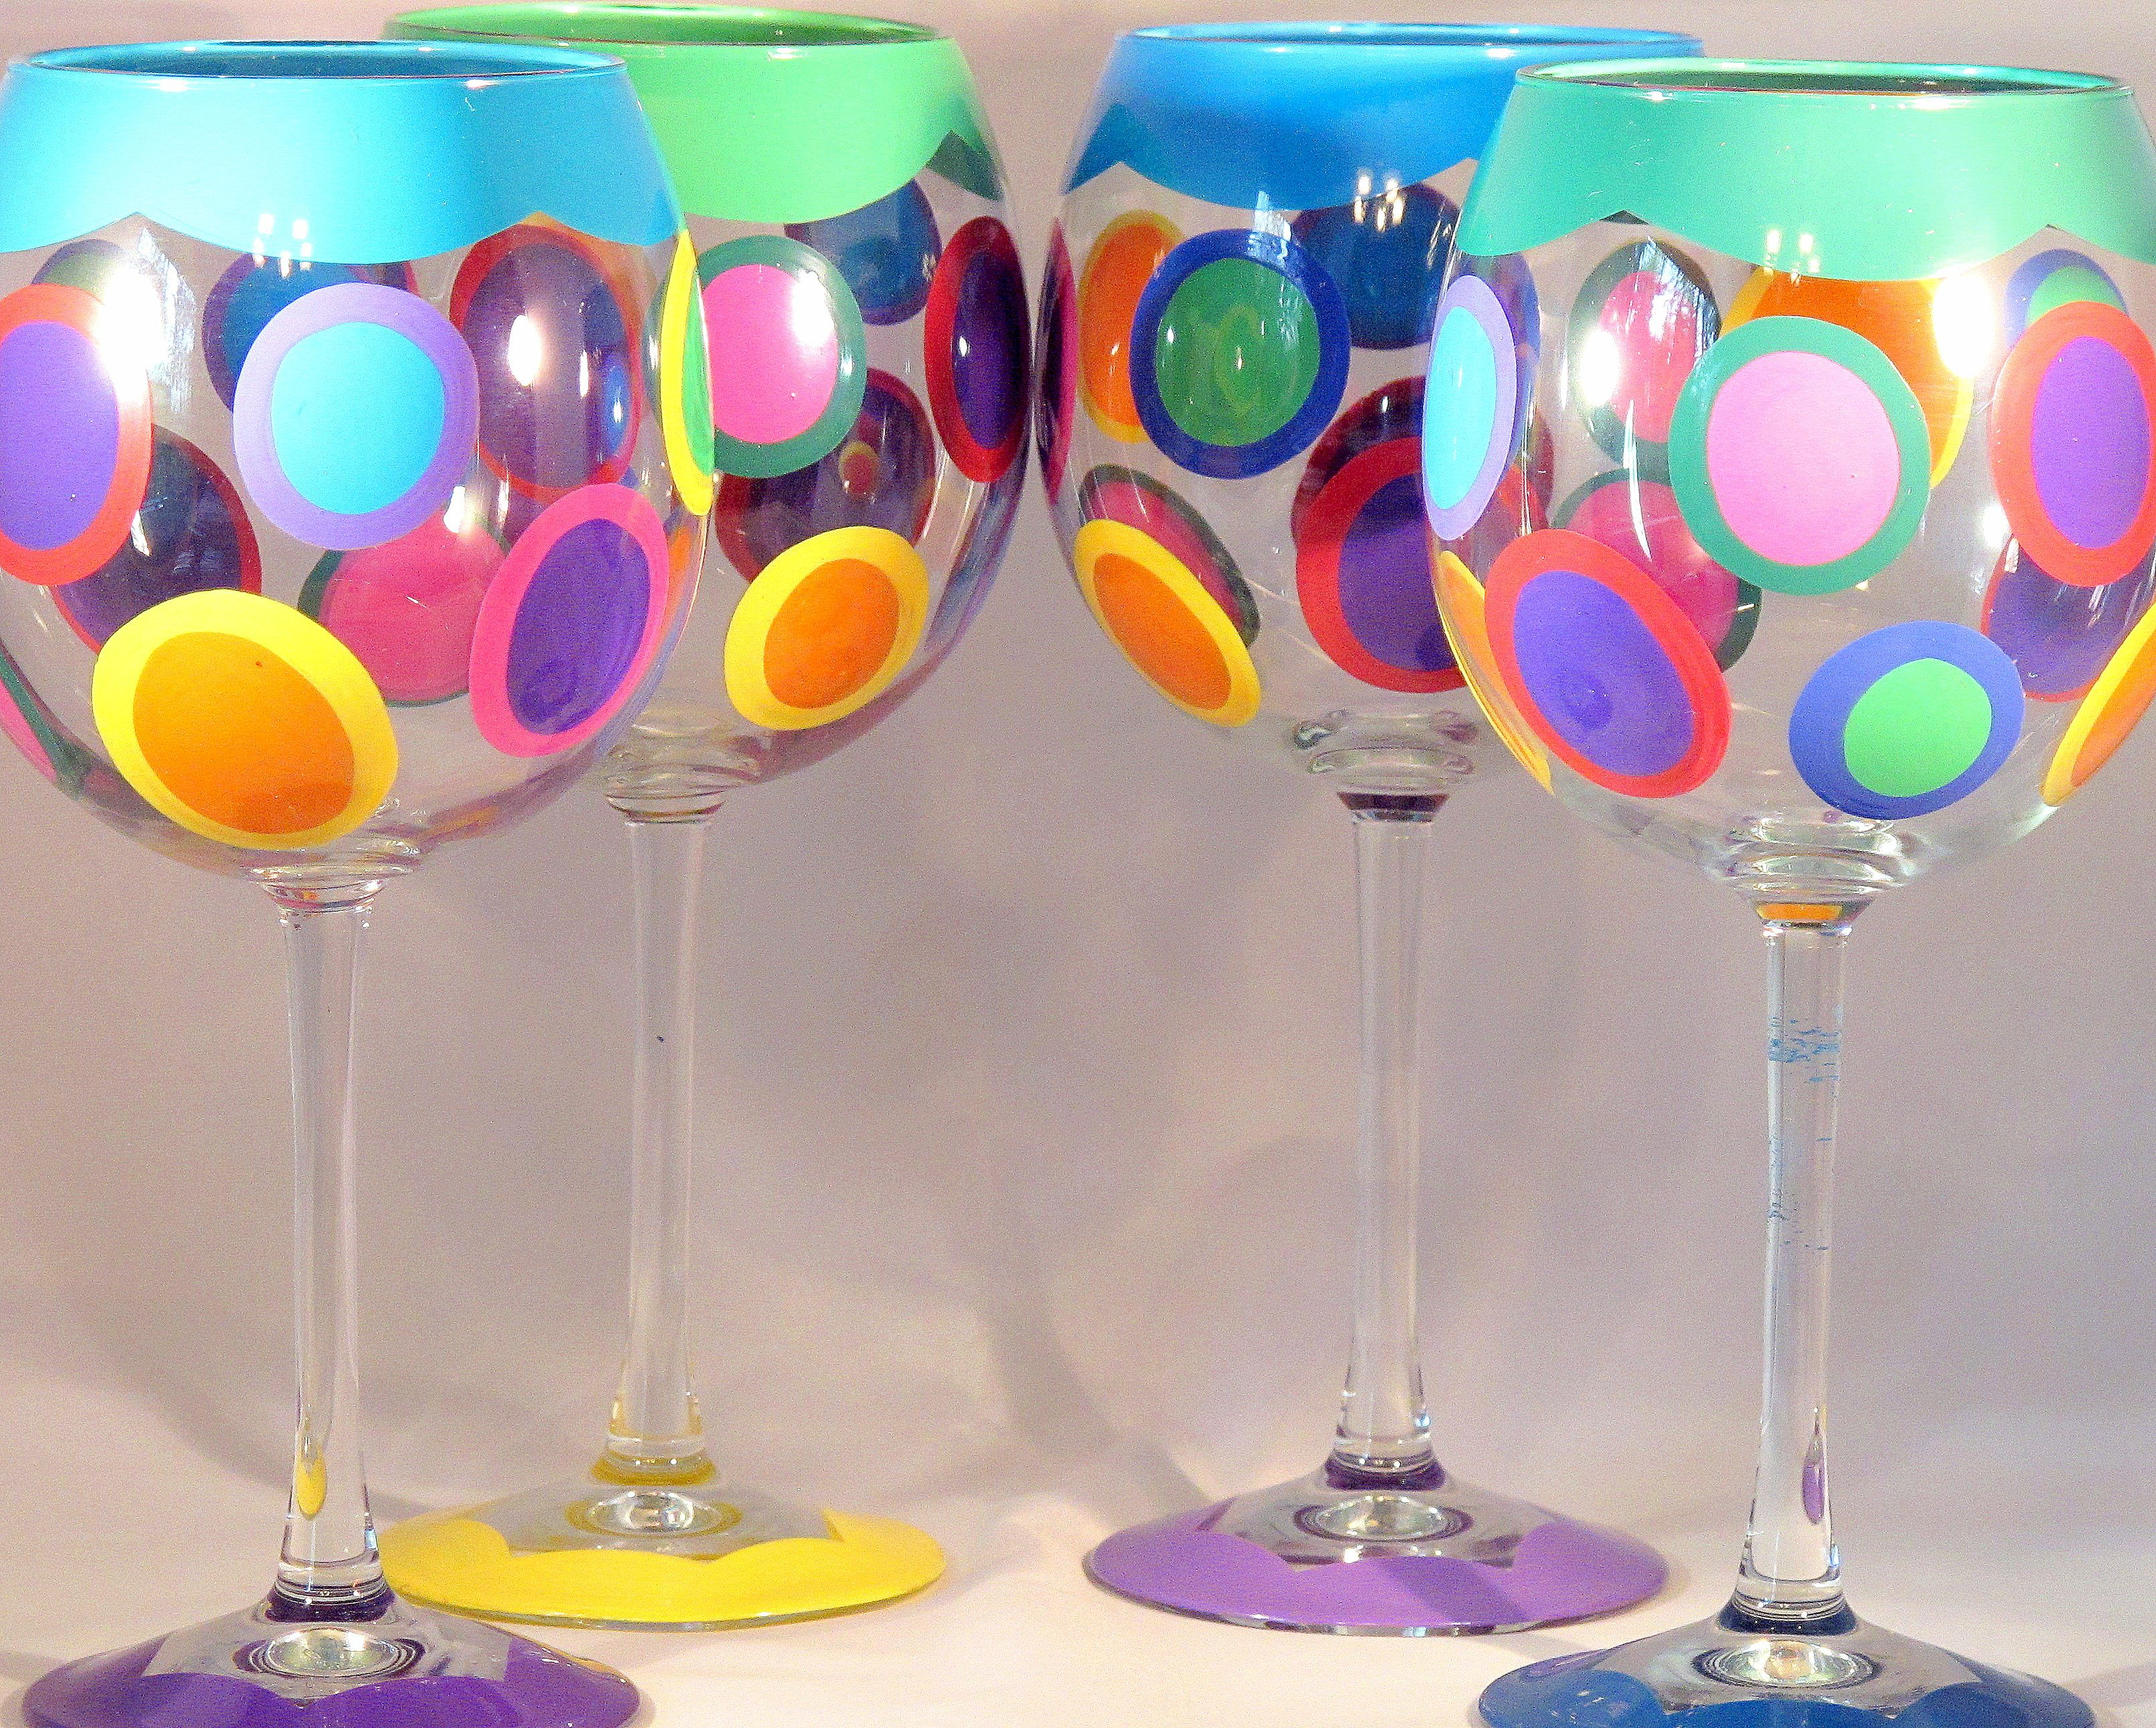 Uncategorized Dishwasher Safe Paint For Glass polka dot wine glasses glass company dishwashers and detroit bright colorful are hand painted by an american artist then